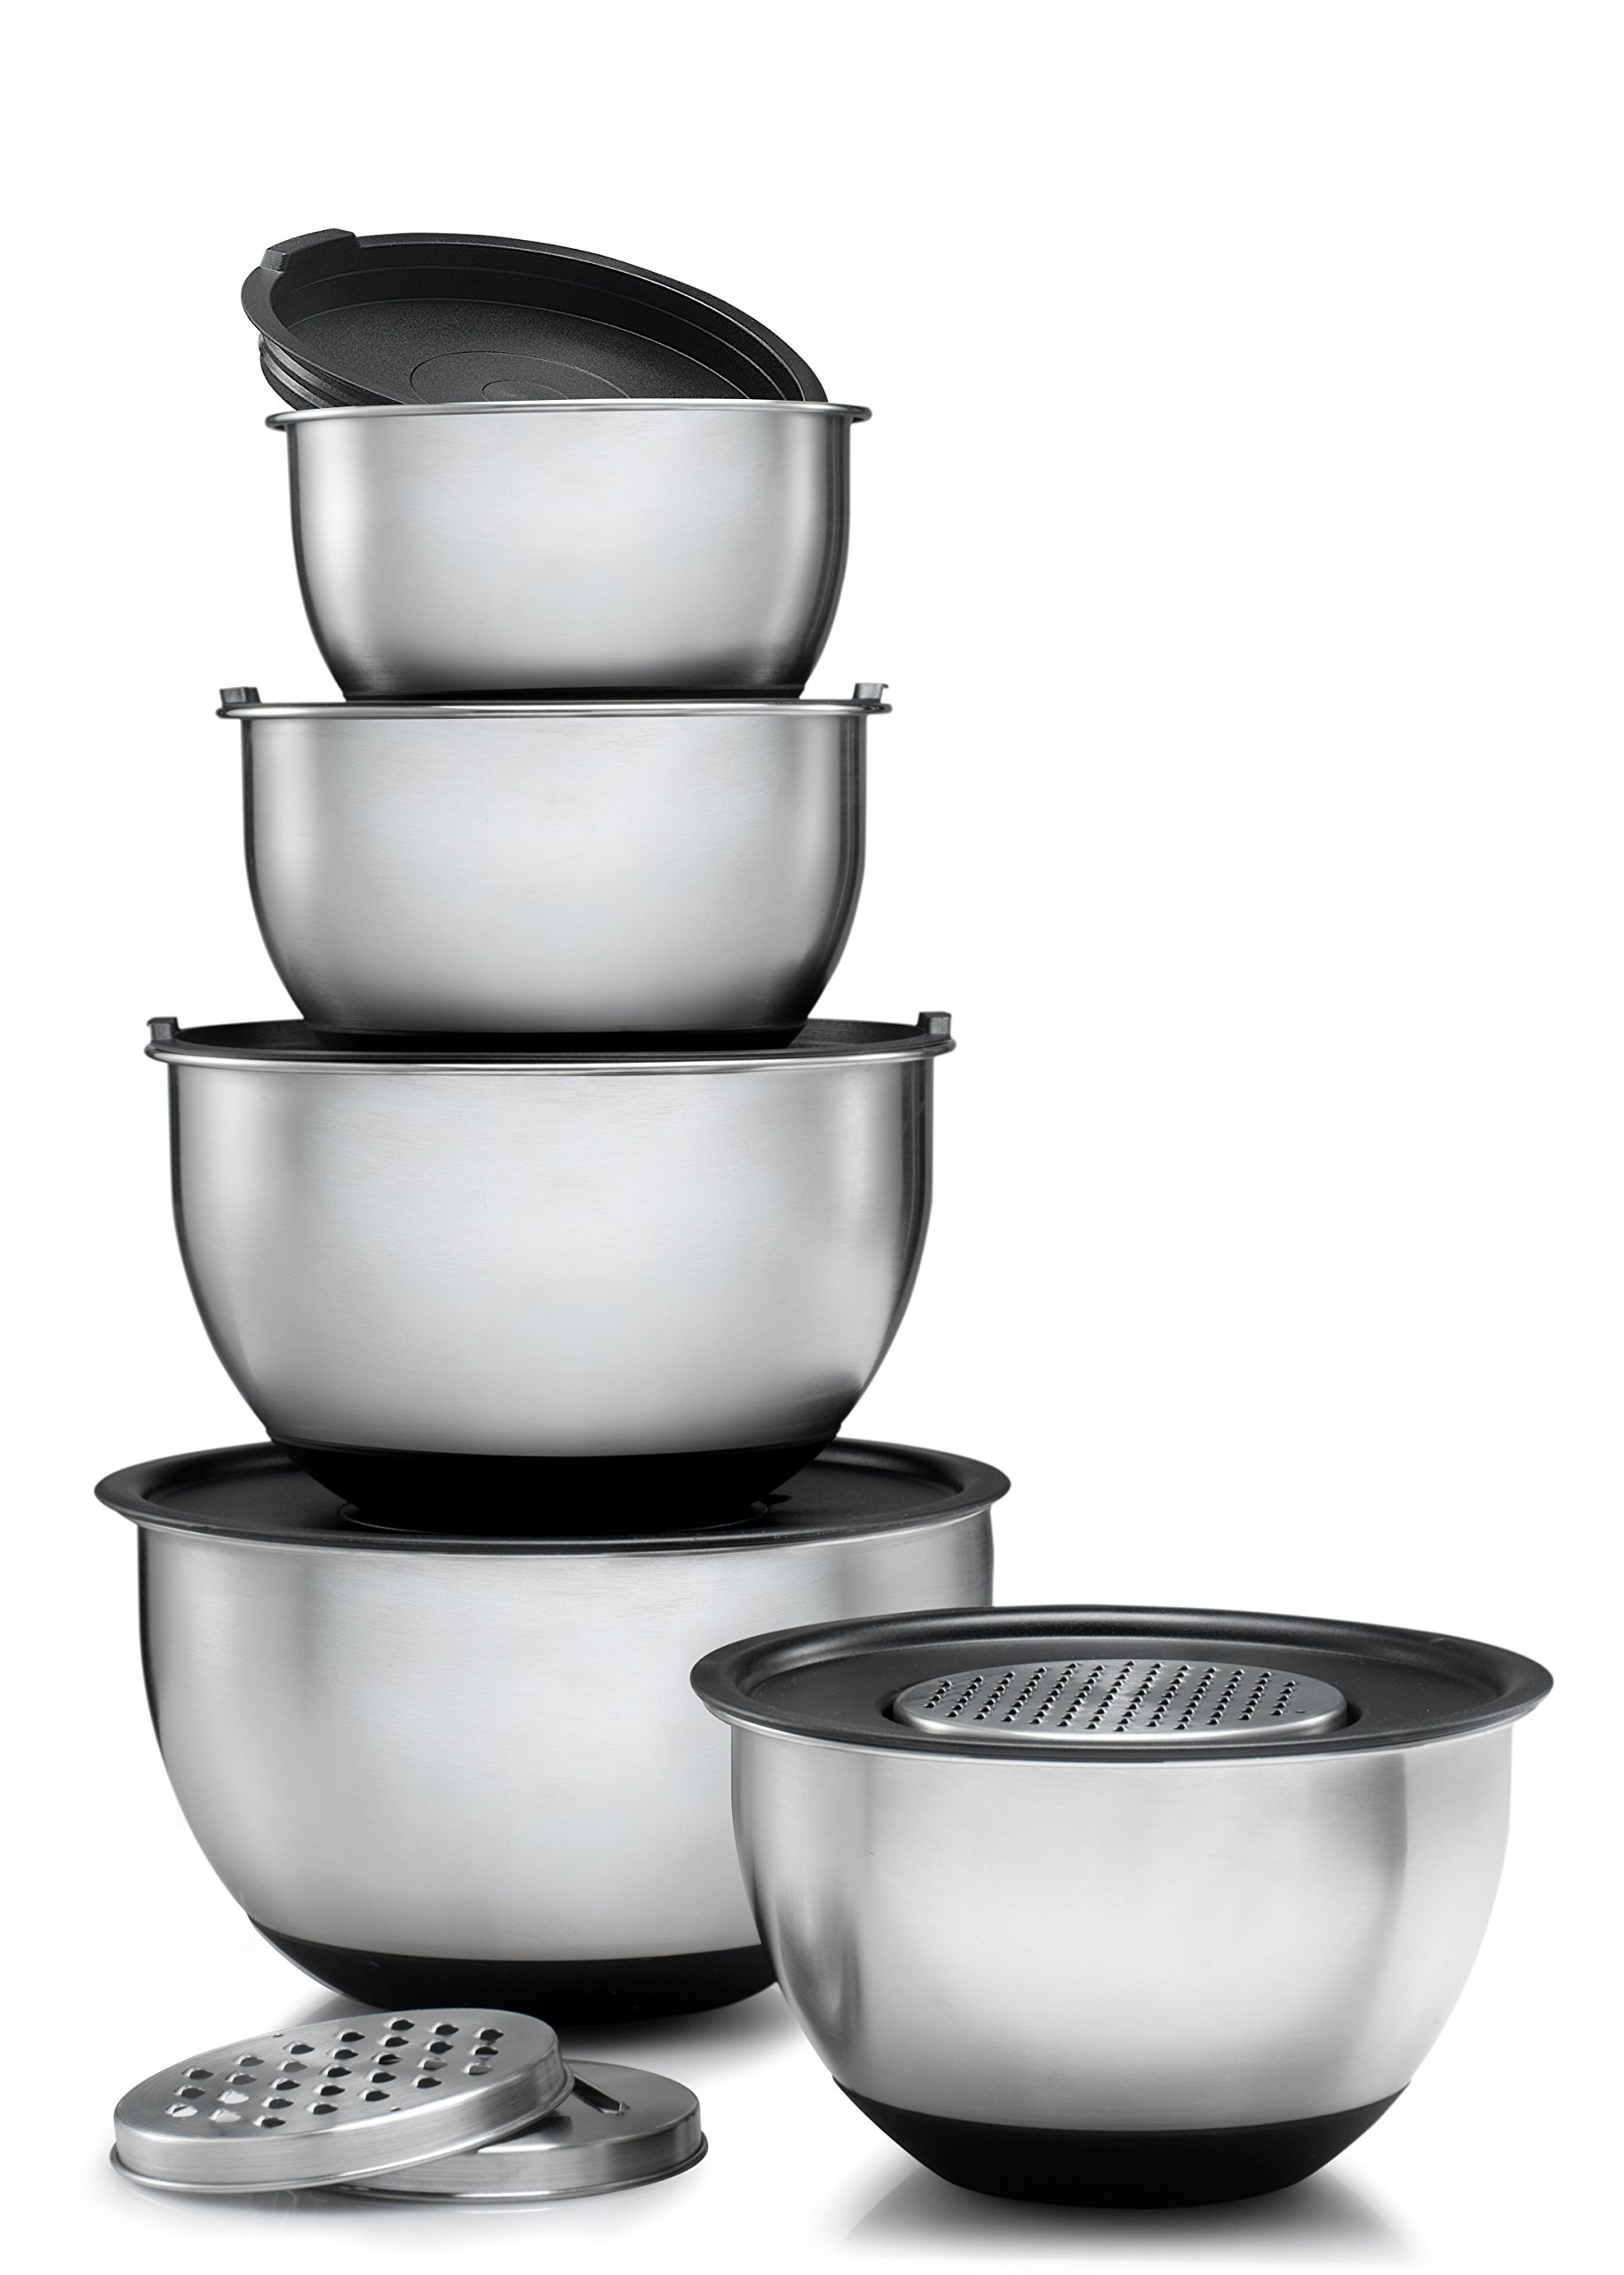 Sagler Stainless Steel Mixing Bowls Set of 5, with Lids and 3 kind of graters by Sagler